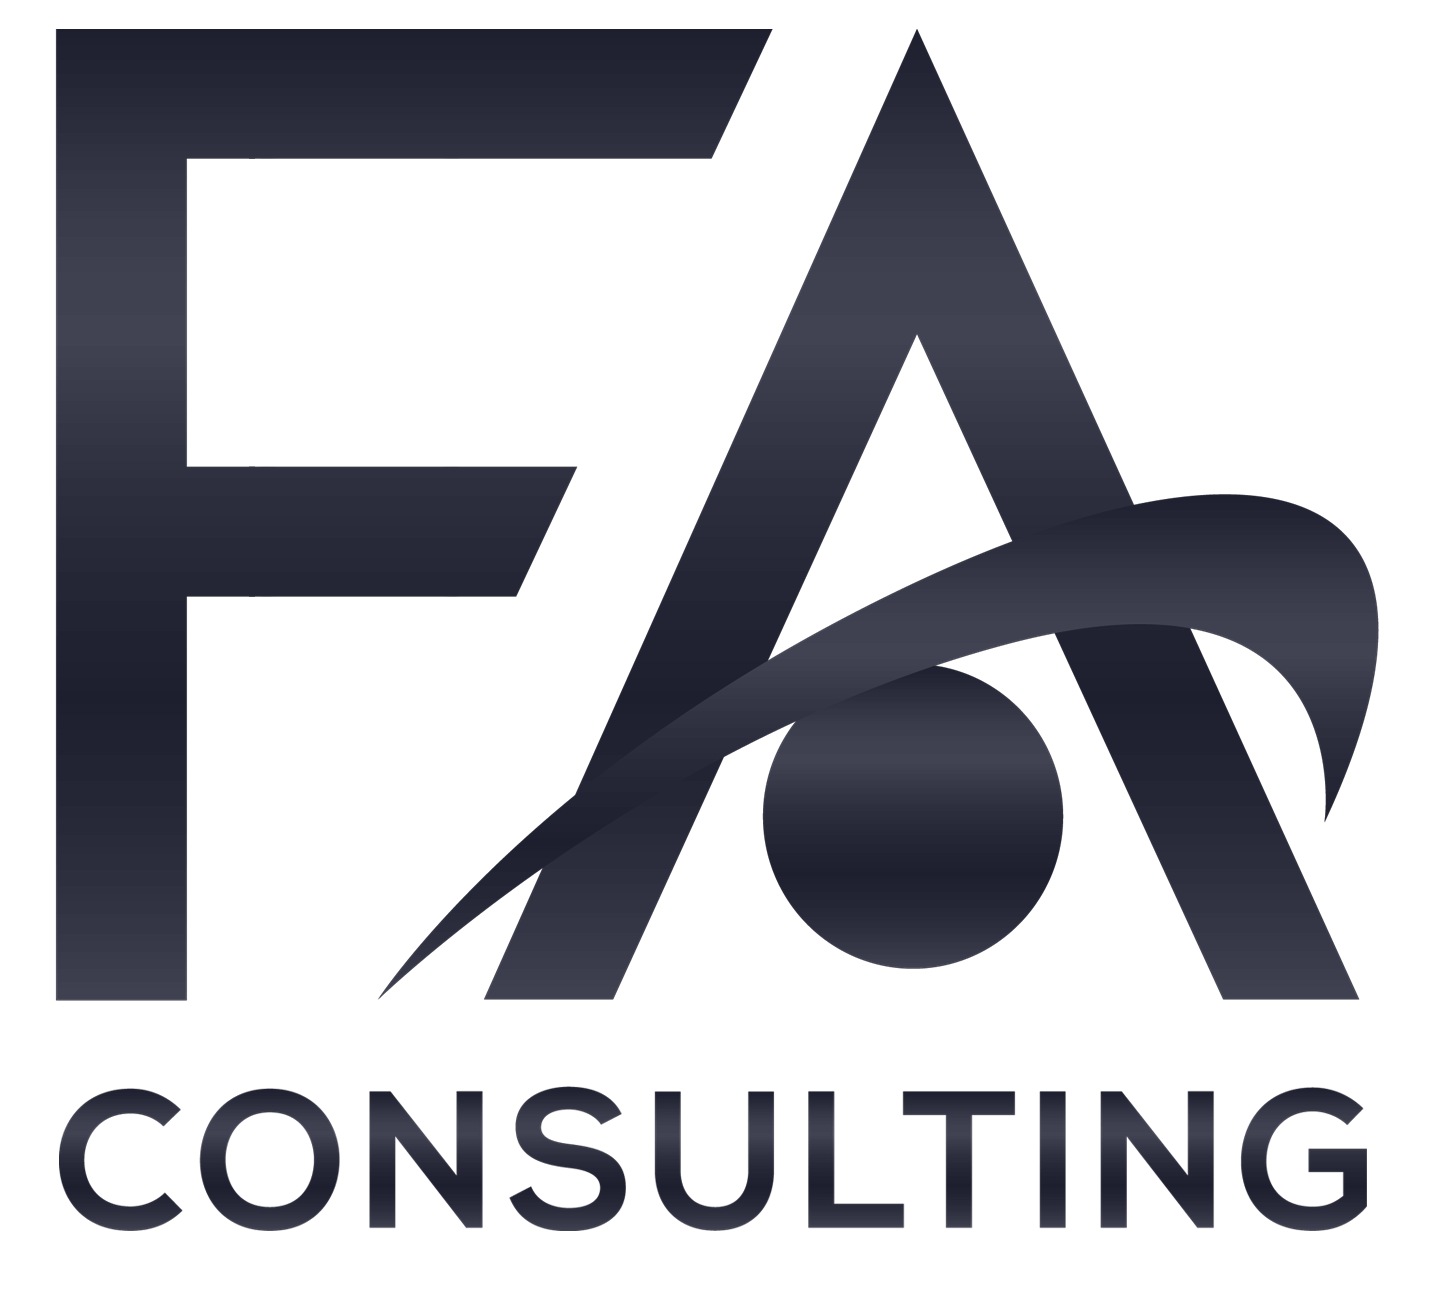 logo of FA consulting